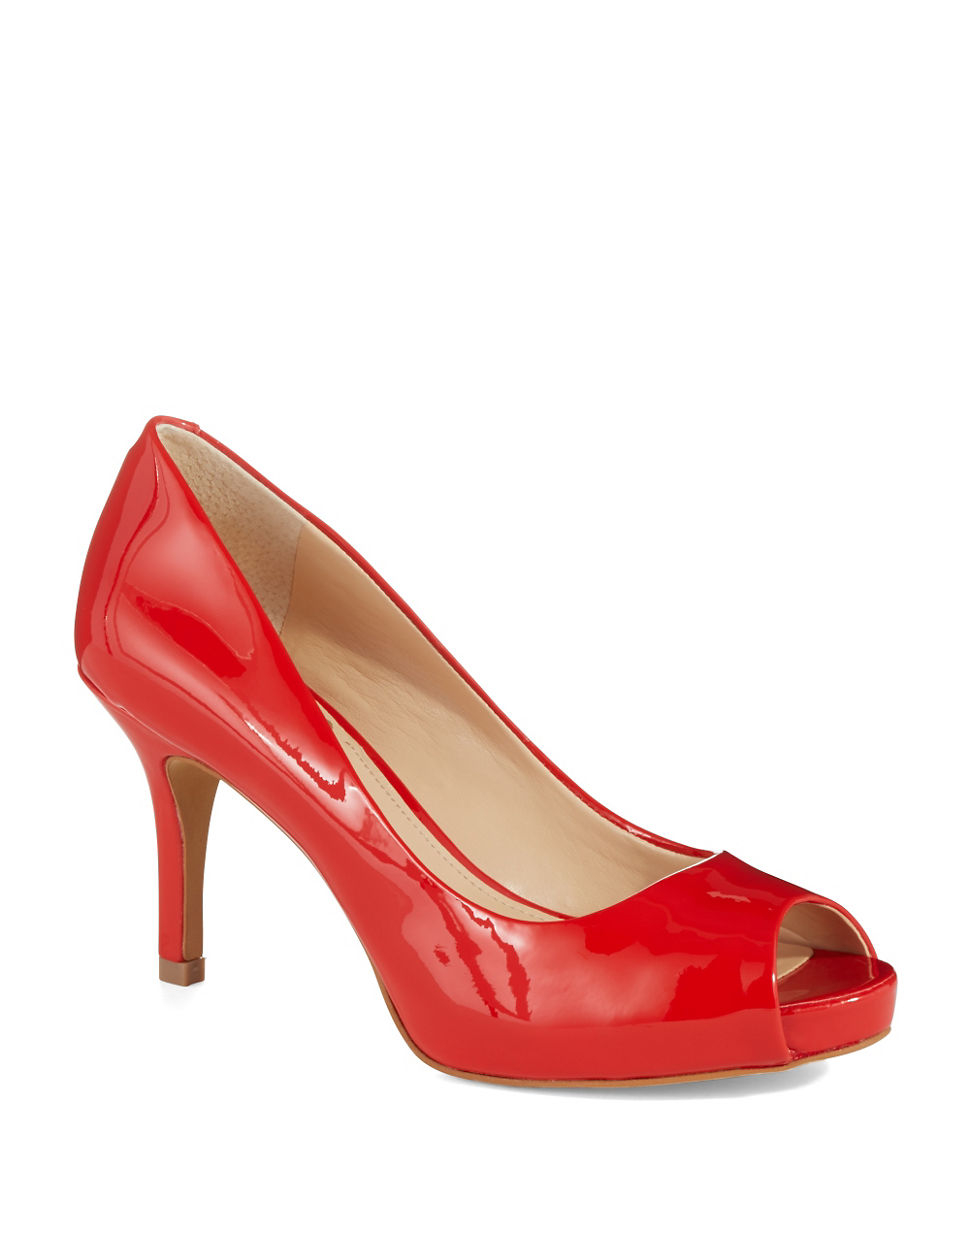 Vince Camuto Kiley Patent Leather Pumps In Red Lyst